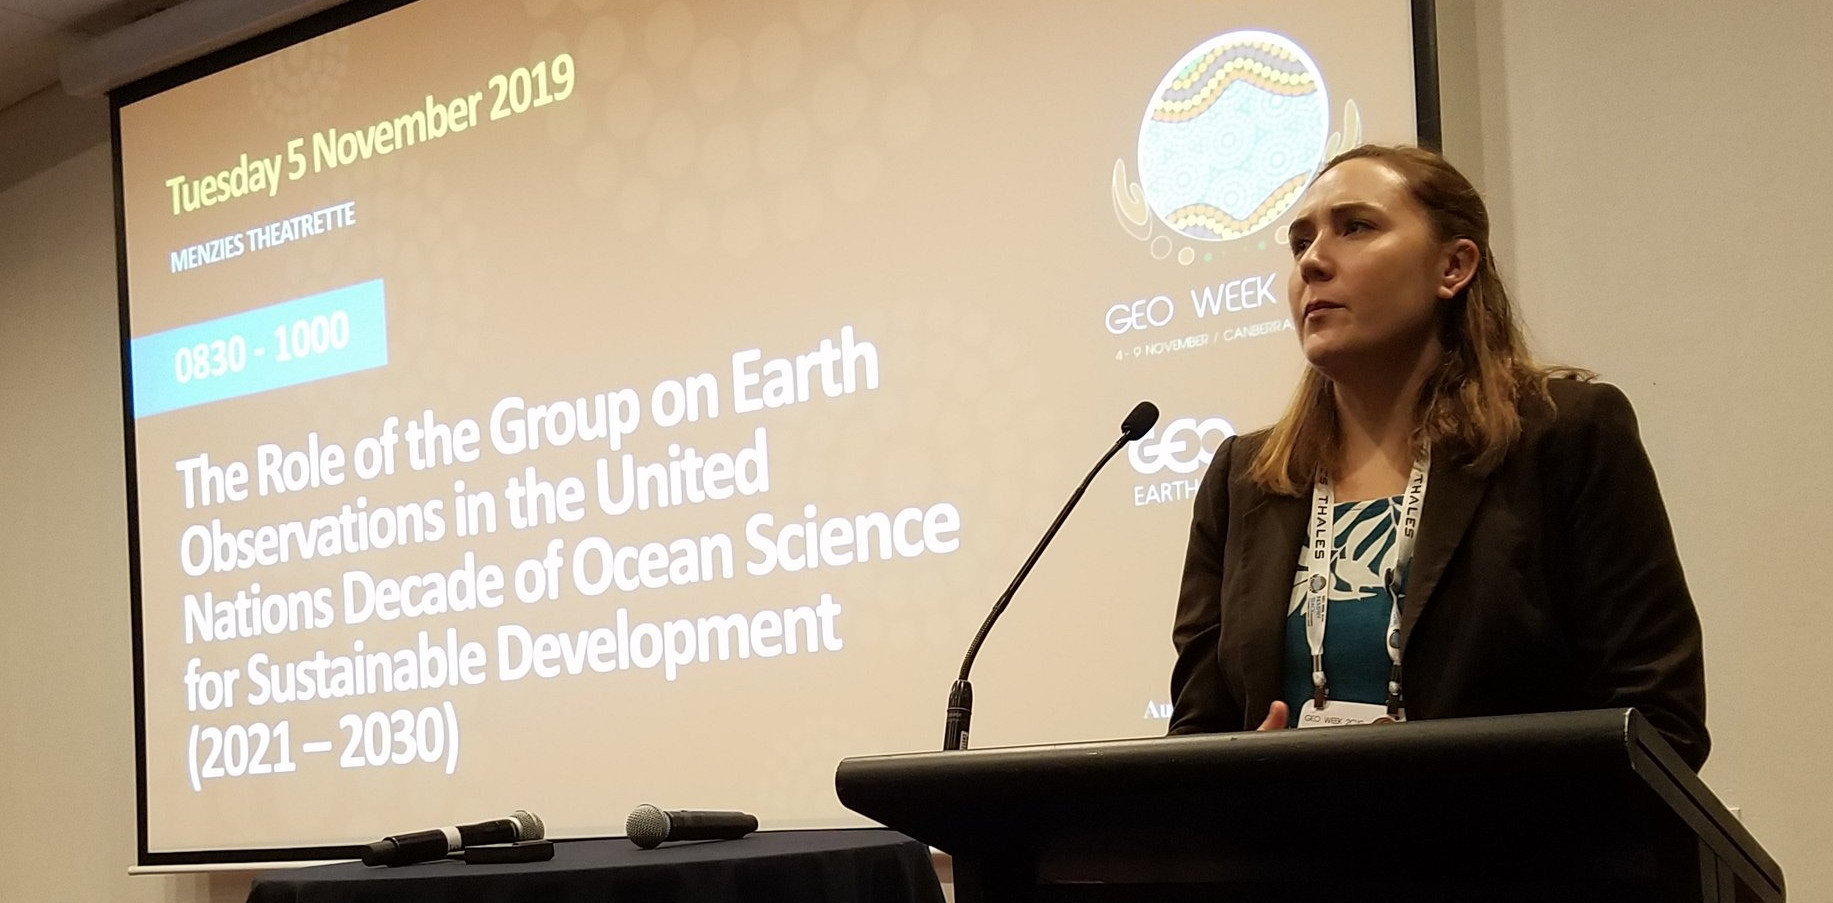 Dr. Emily Smail (GEO Blue Planet/NOAA/UMD) presents ideas for the role of GEO in the UN Decade of Ocean Science for Sustainable Development at GEO Week 2019 side event.